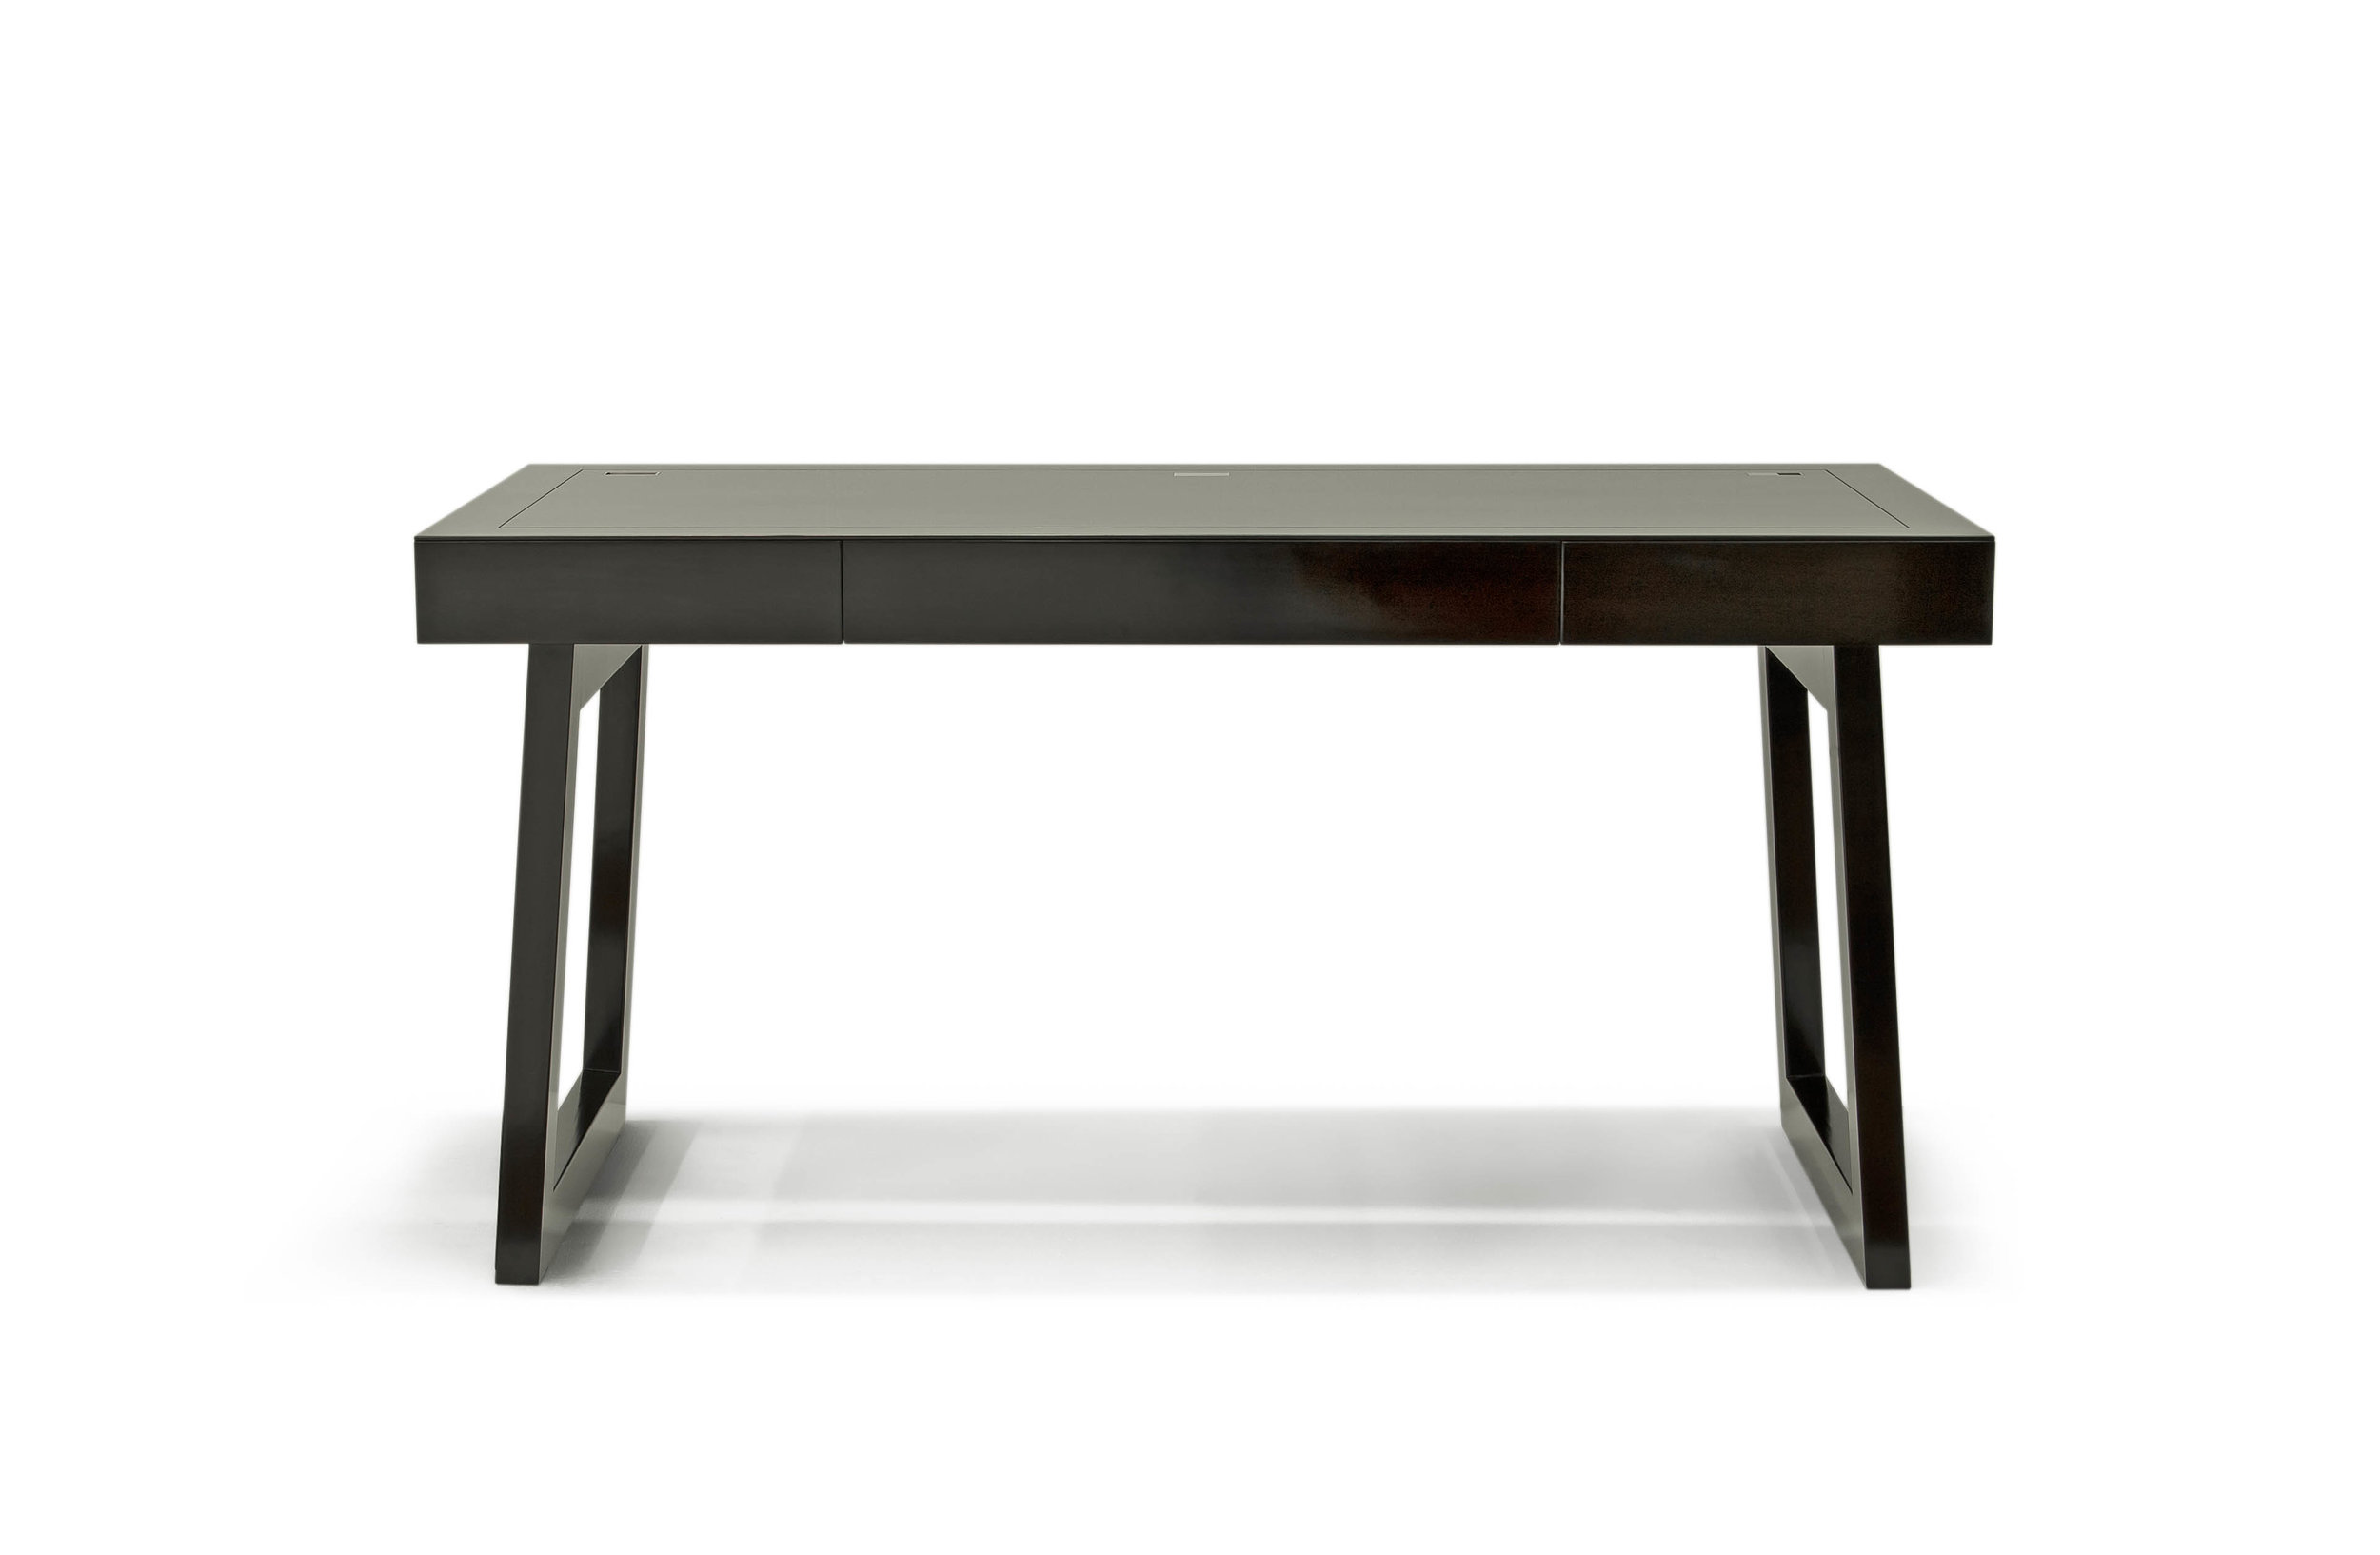 ....bespoke modern chinese furniture : desk..特别定制现代中式家具 : 书台....